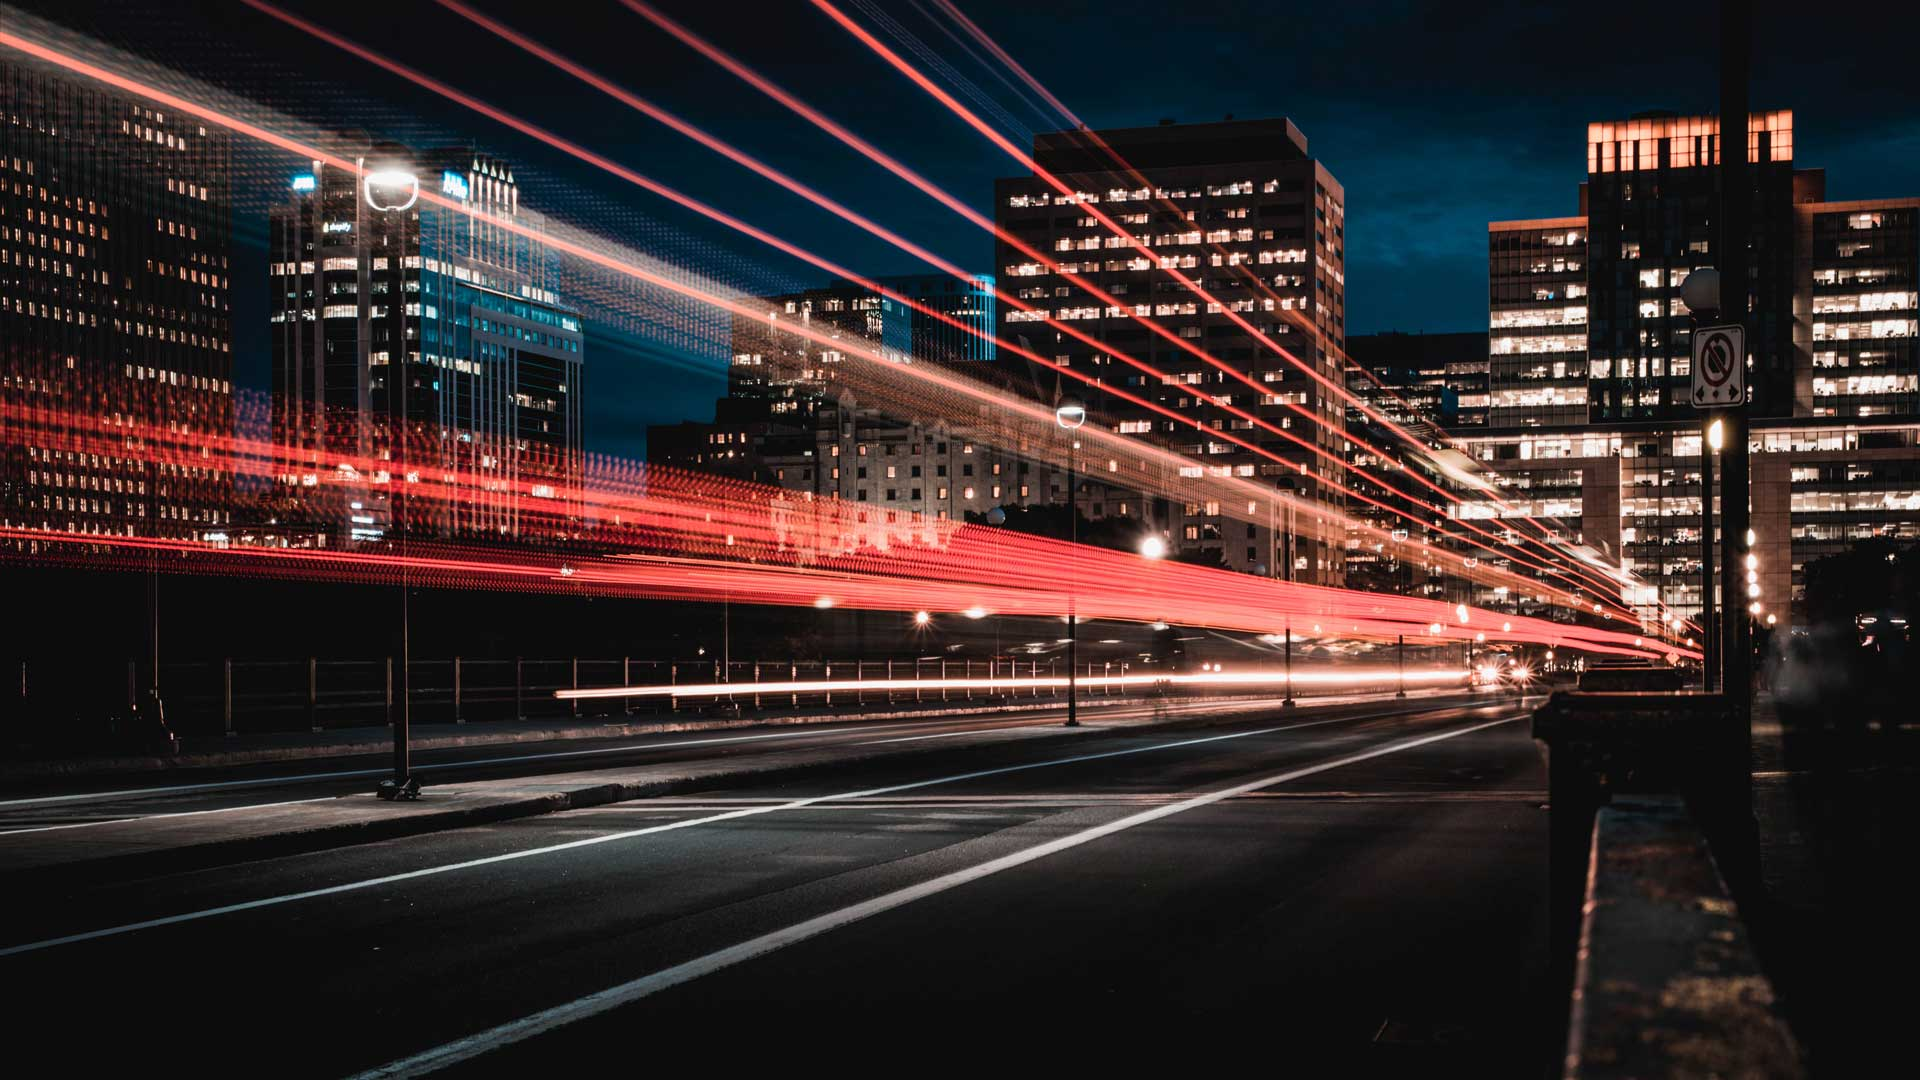 Long exposure of a city street at night with white headlight trails and red taillight trails